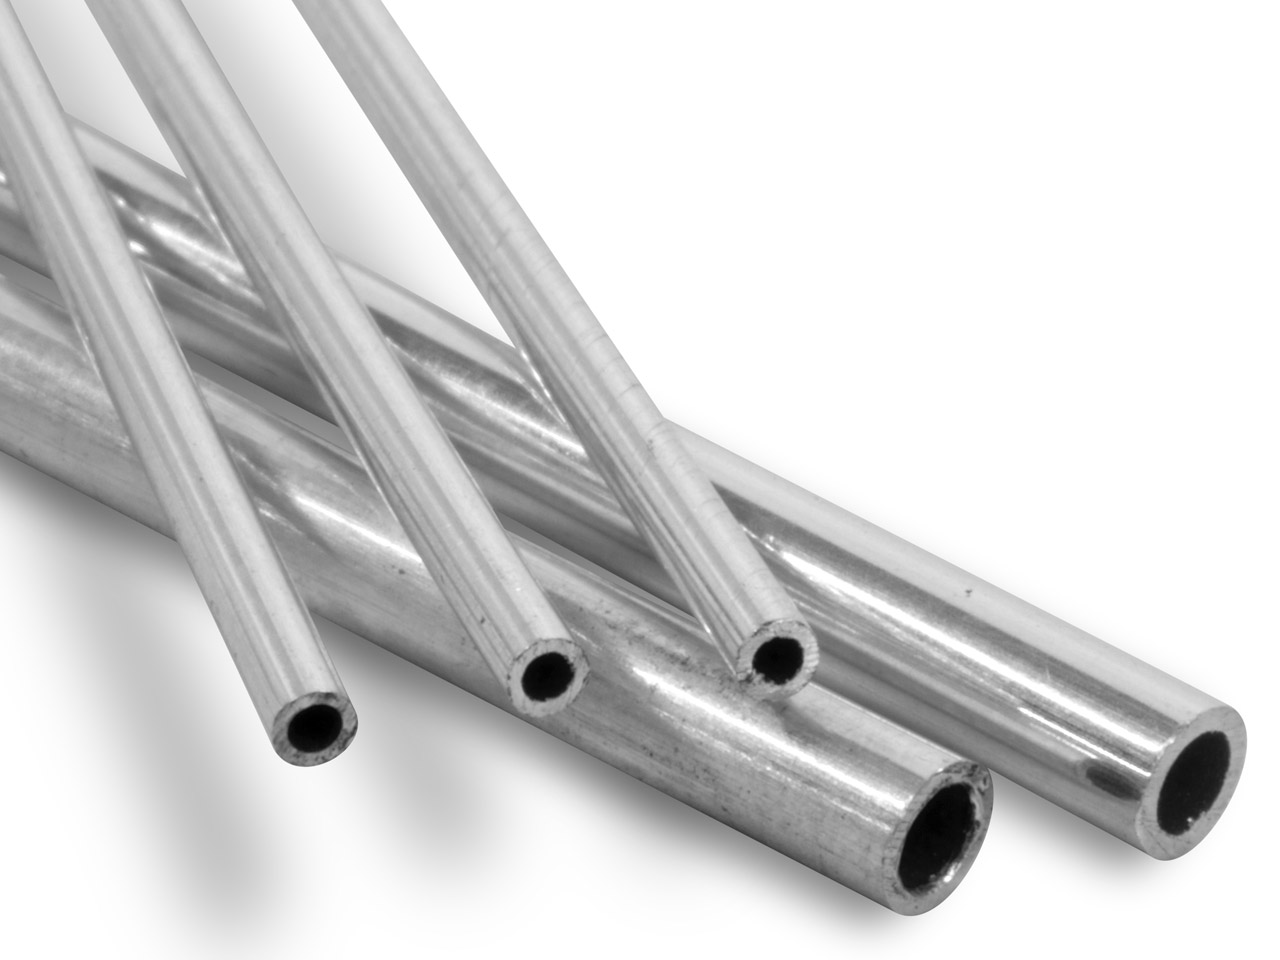 Sterling Silver Tube, Ref 12,      Outside Diameter 1.6mm,            Inside Diameter 1.0mm, 0.3mm Wall  Thickness